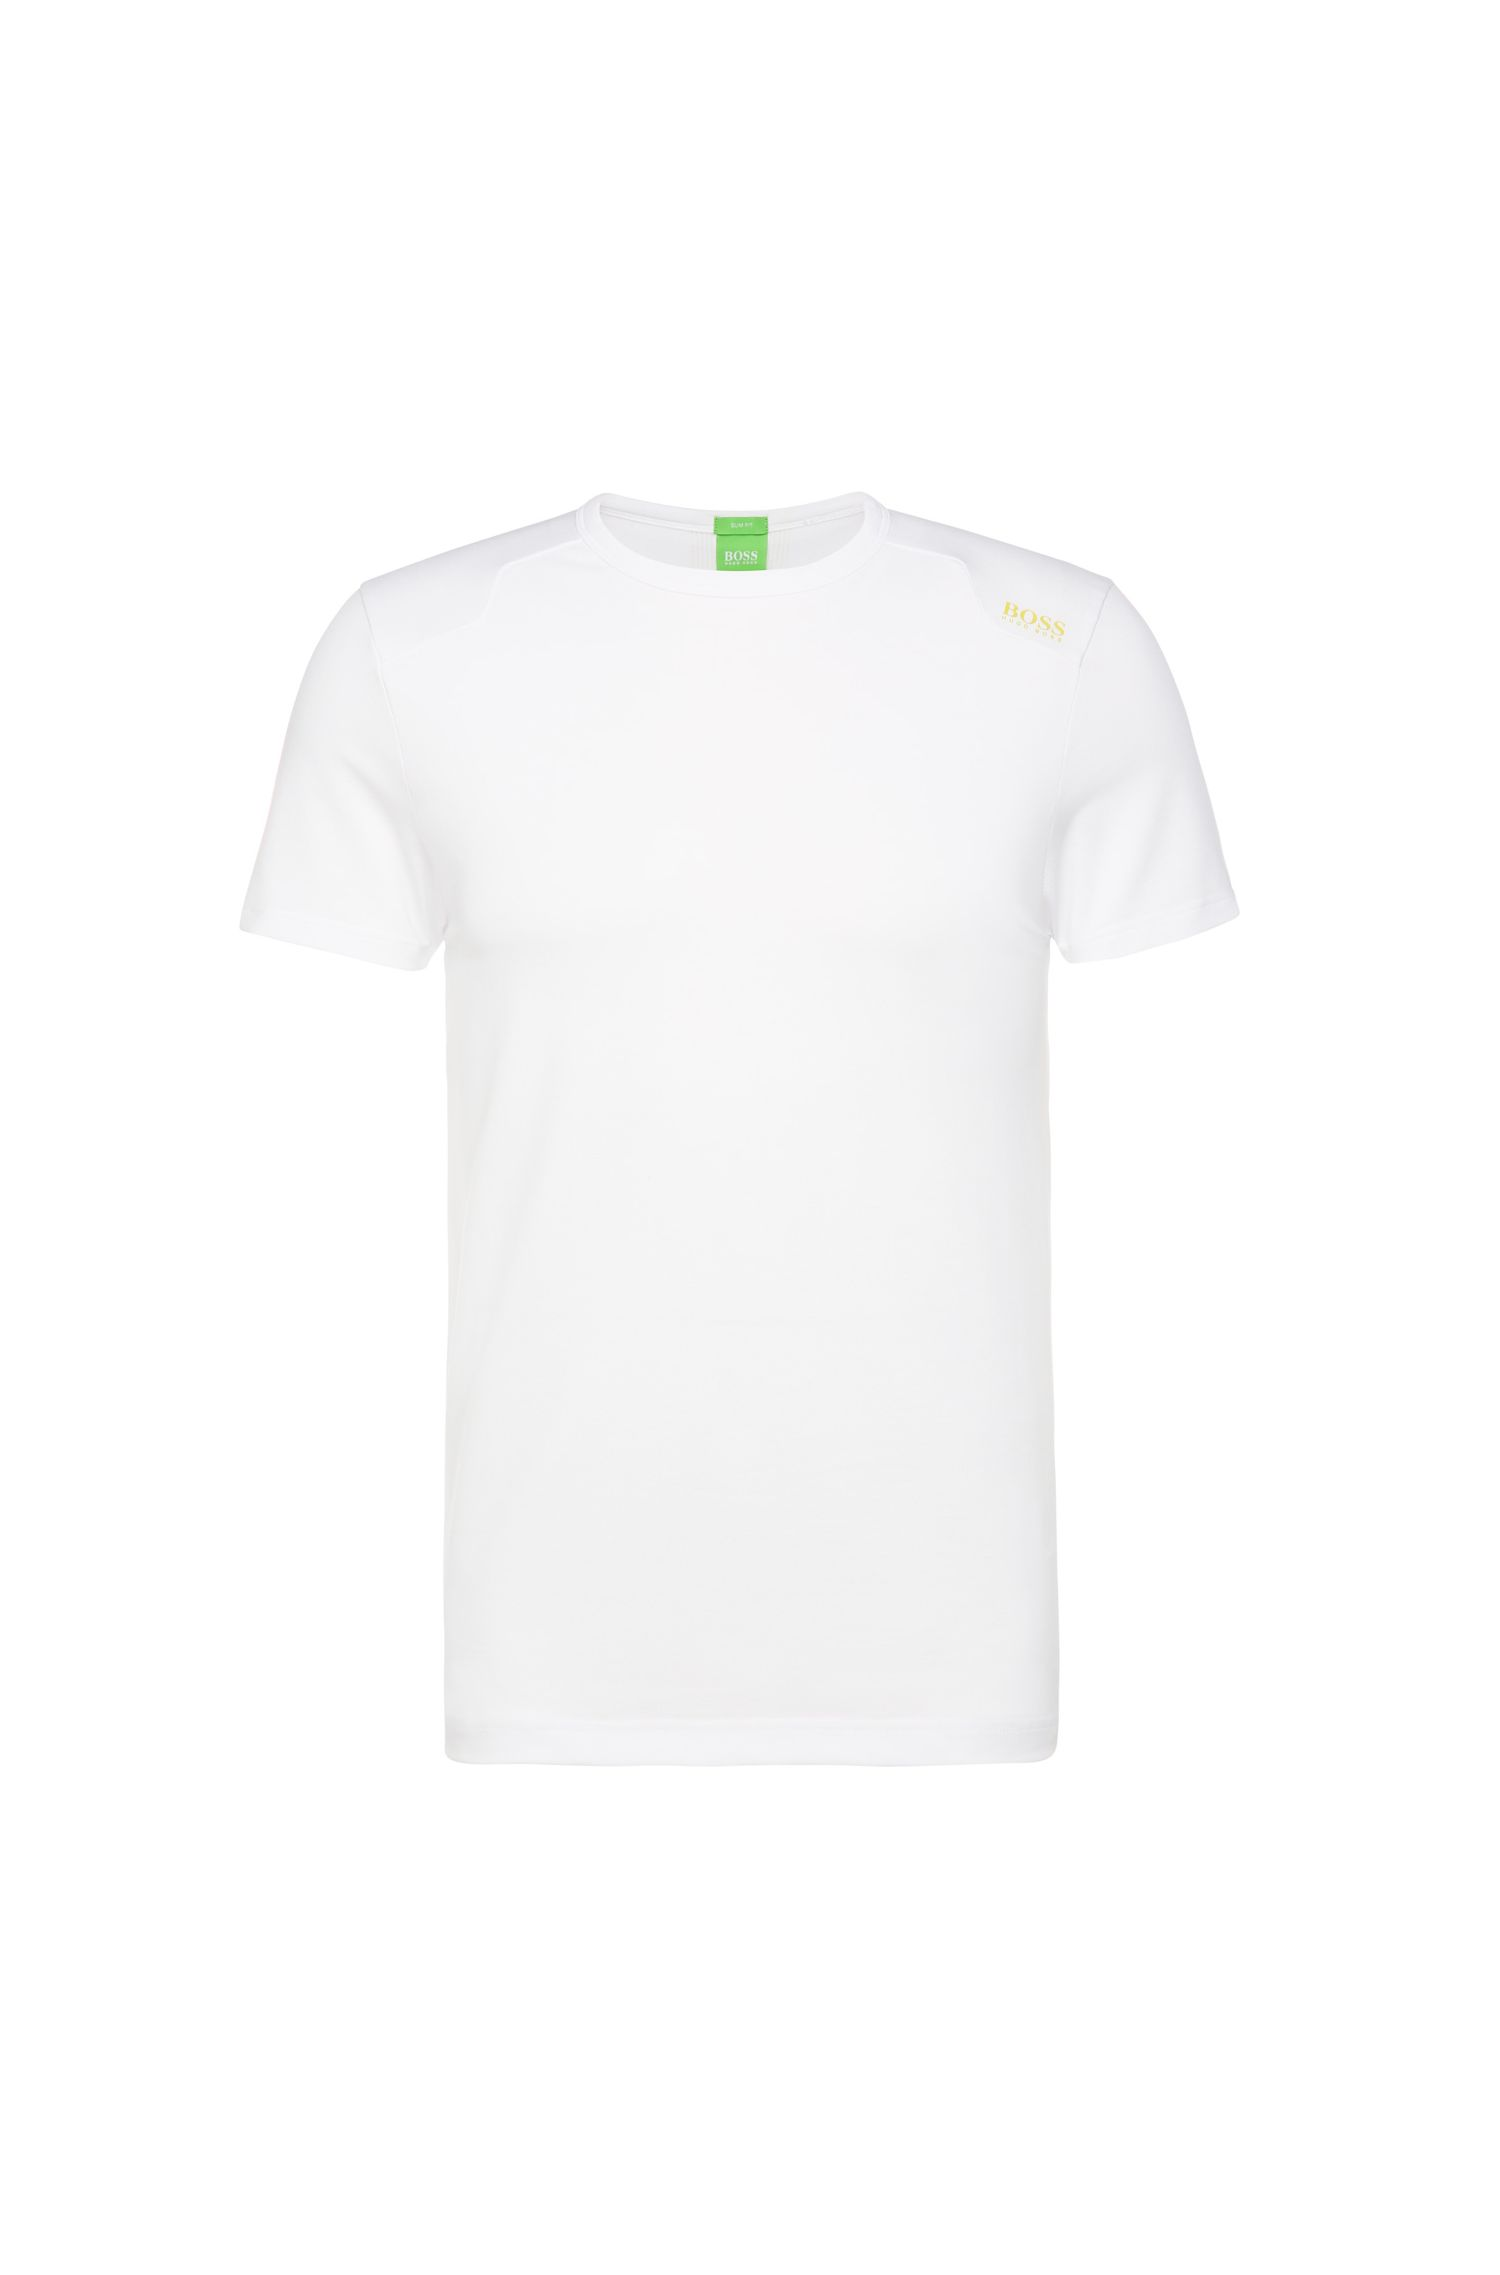 T-shirt fonctionnel Slim Fit en coton mélangé extensible : « Teenox »